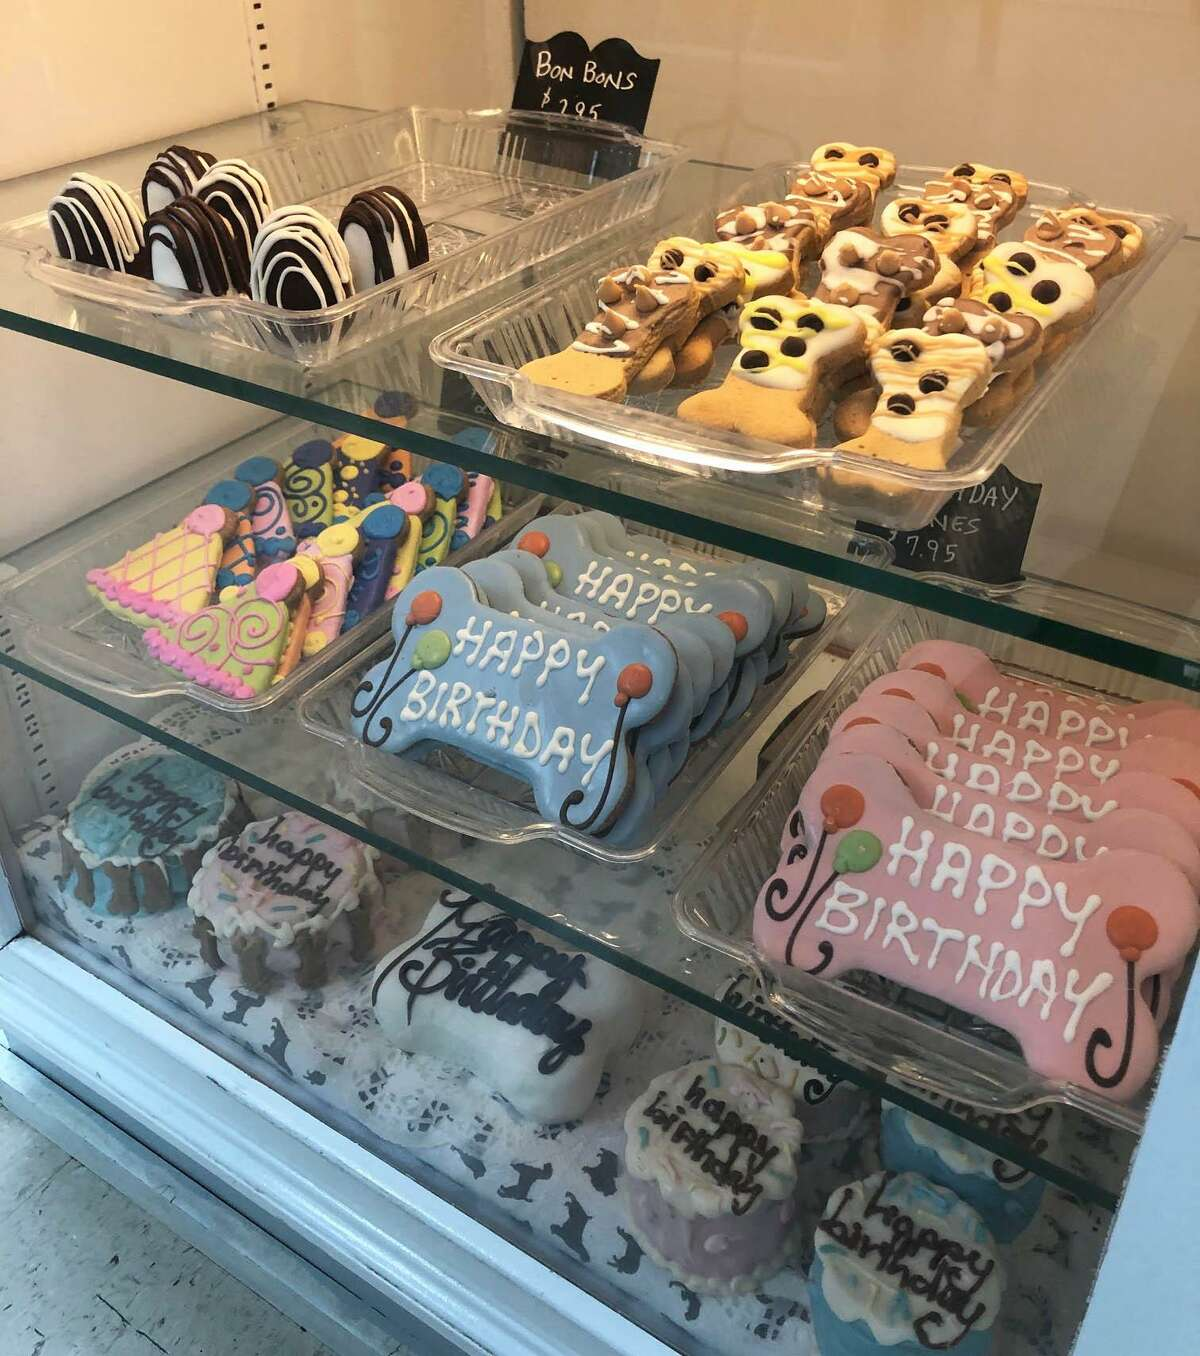 Spectrum/Debbie Bauman, owner of The Barkery Boo'tique in New Milford has moved the business from Bank Street to 92 Park Lane Road (Route 202). A variety of special baked goods are among the items sold at the store. May 2019